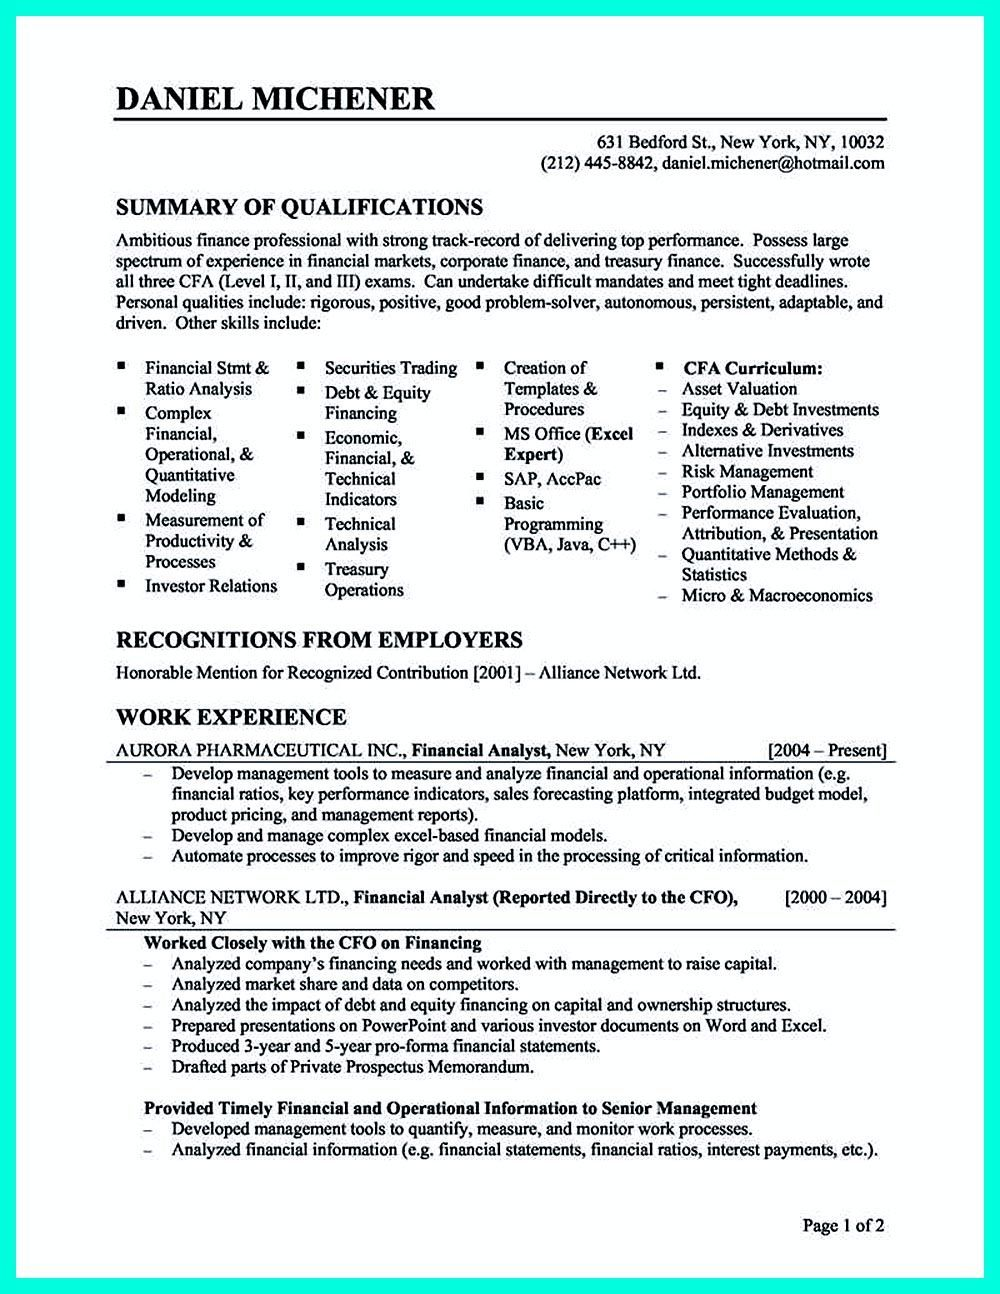 Writing credit analyst resume is a must if you want to get a job ...